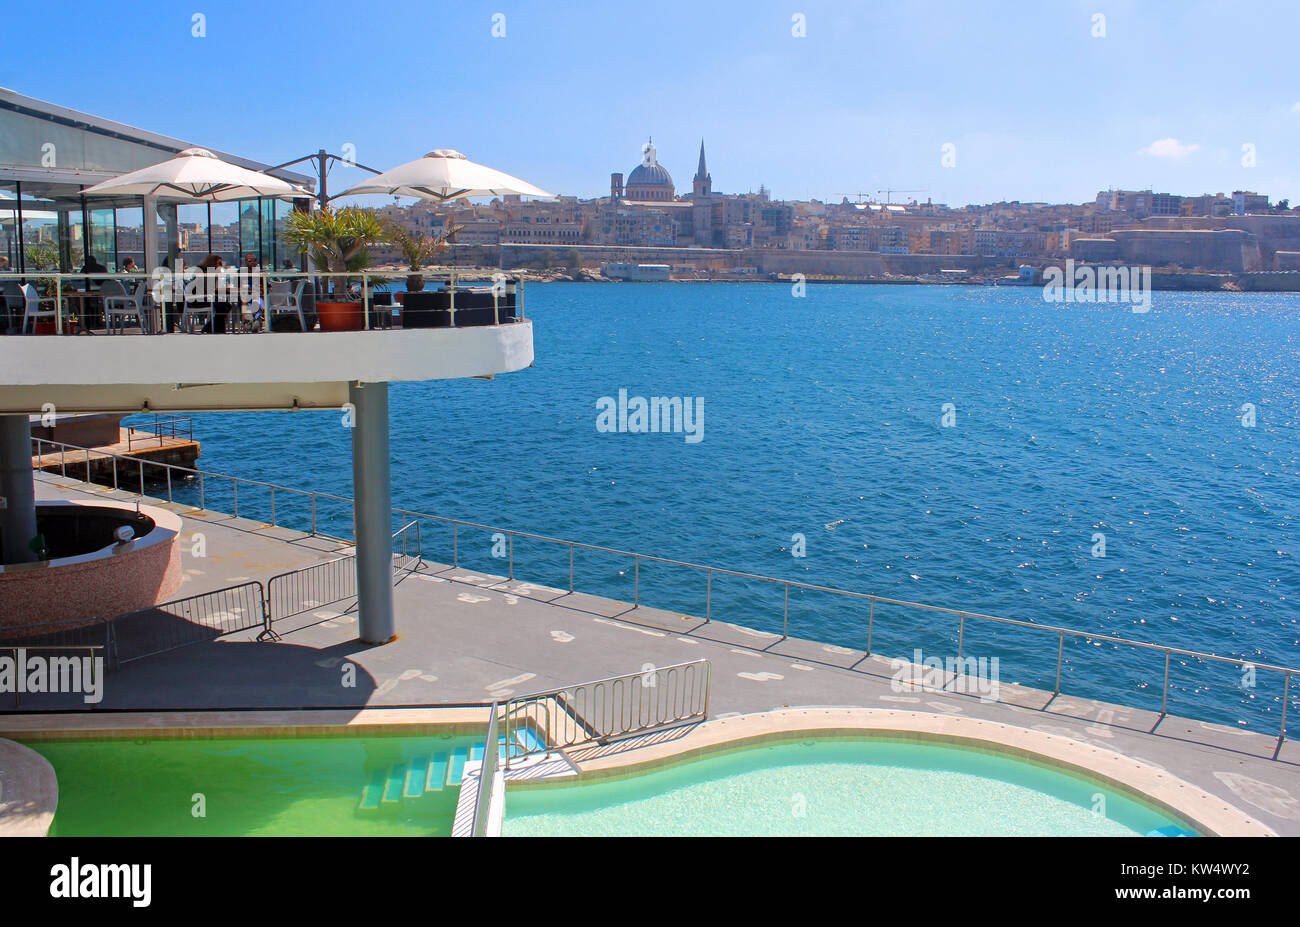 Valletta, Malta, view from Sliema, with swimming pool and roof terrace in the foreground - Stock Image